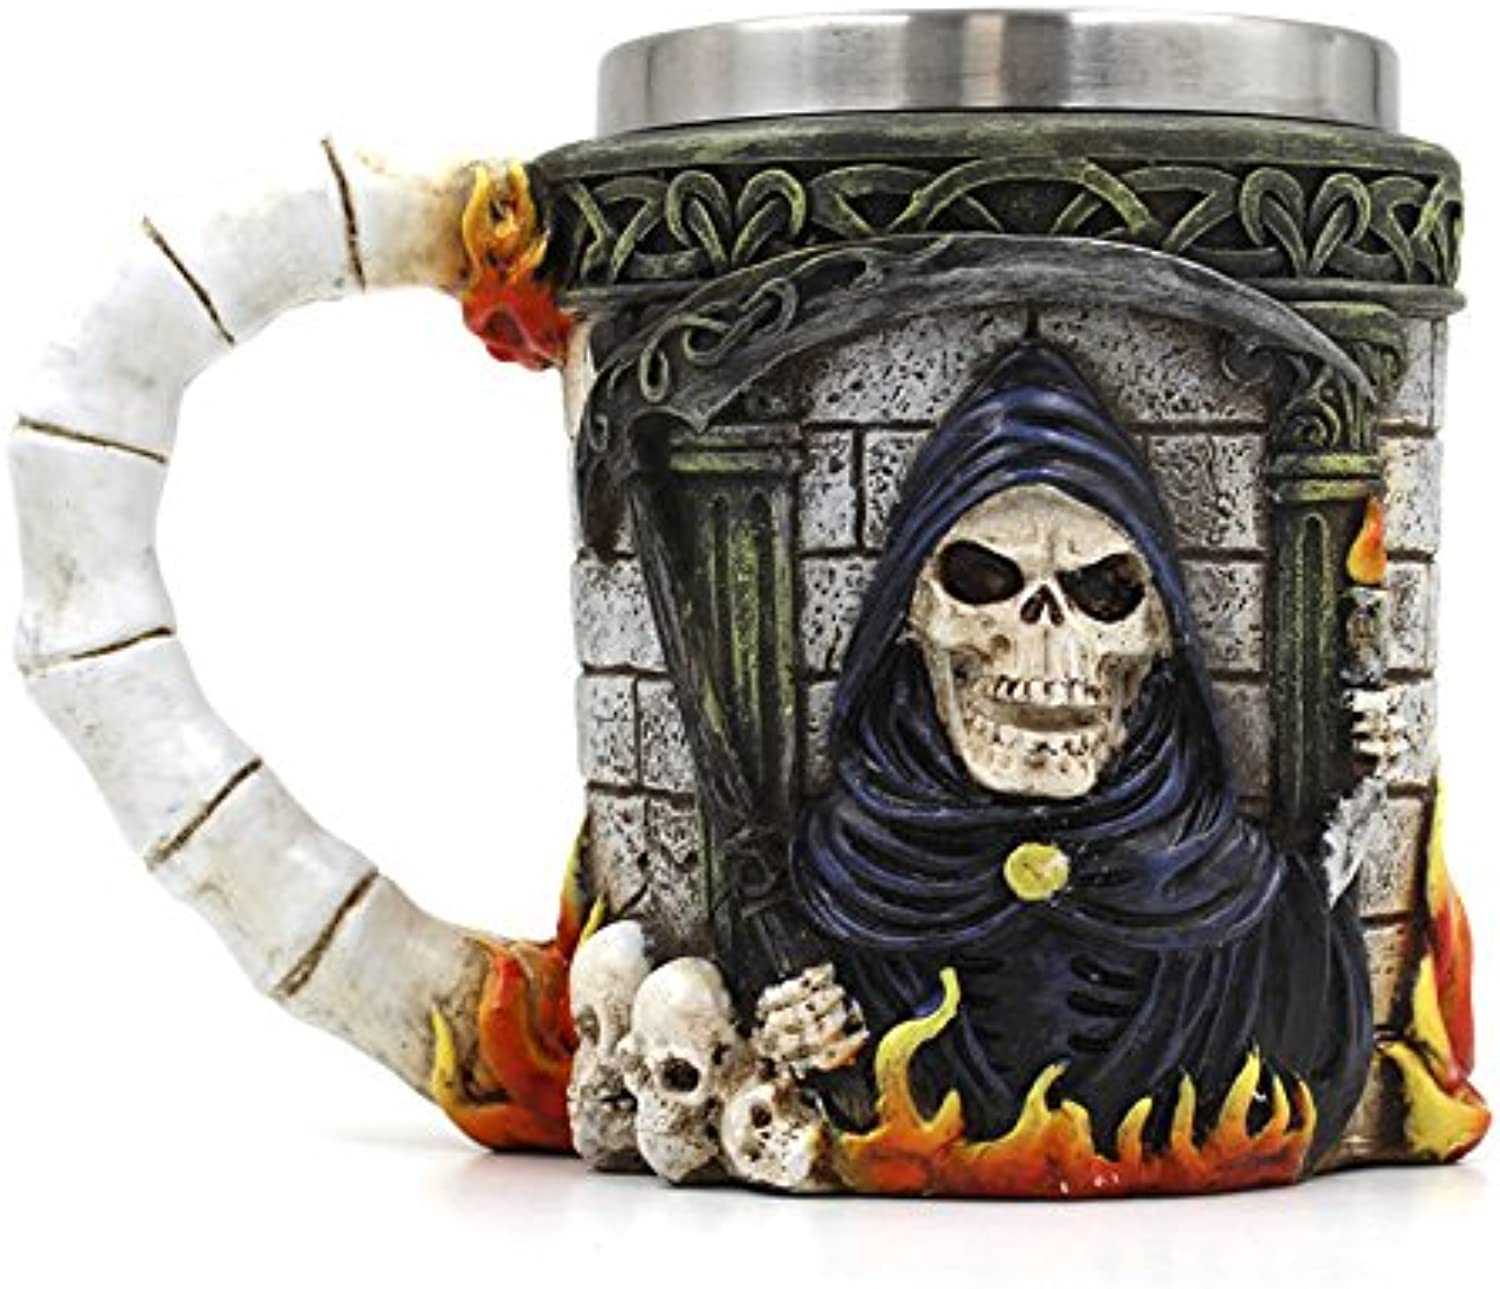 Retro 3D Reaper Skull Mug, Painting Grim Coffee Drink Beer Mugs Resin Stainless Steel Cup for Medieval Personality, Mythic for for Home Office Party